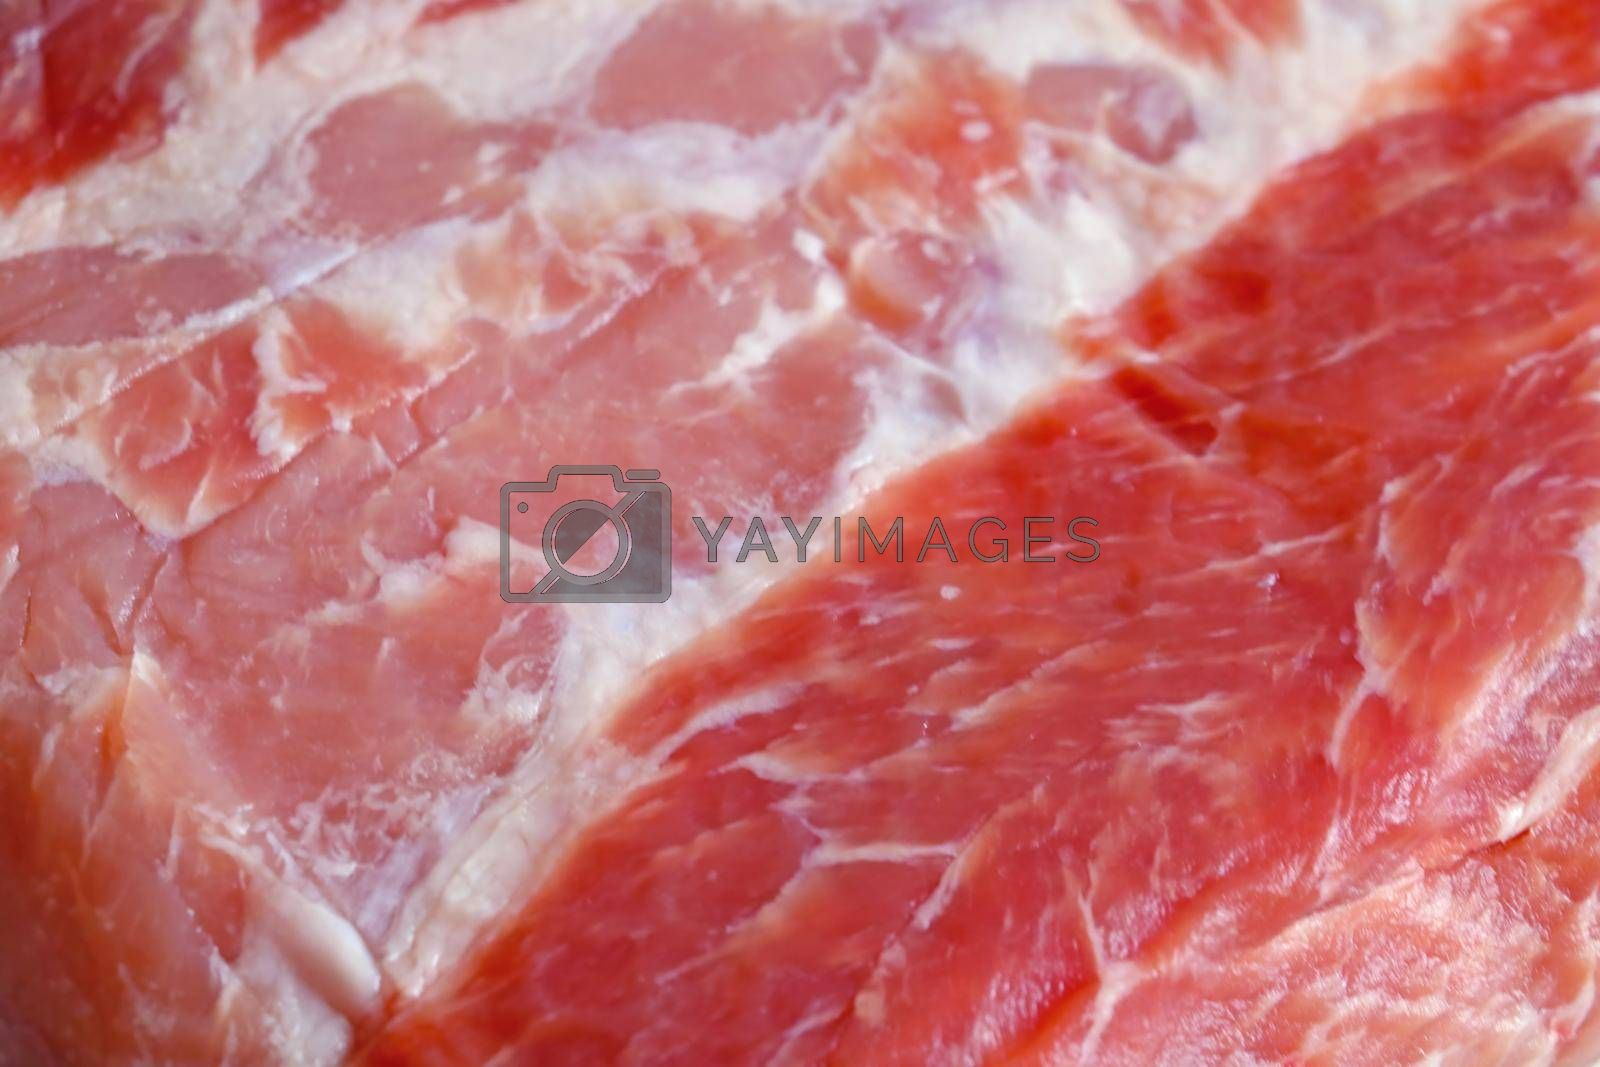 Royalty free image of Close-up on a piece of meat on the table. Texture. by kip02kas